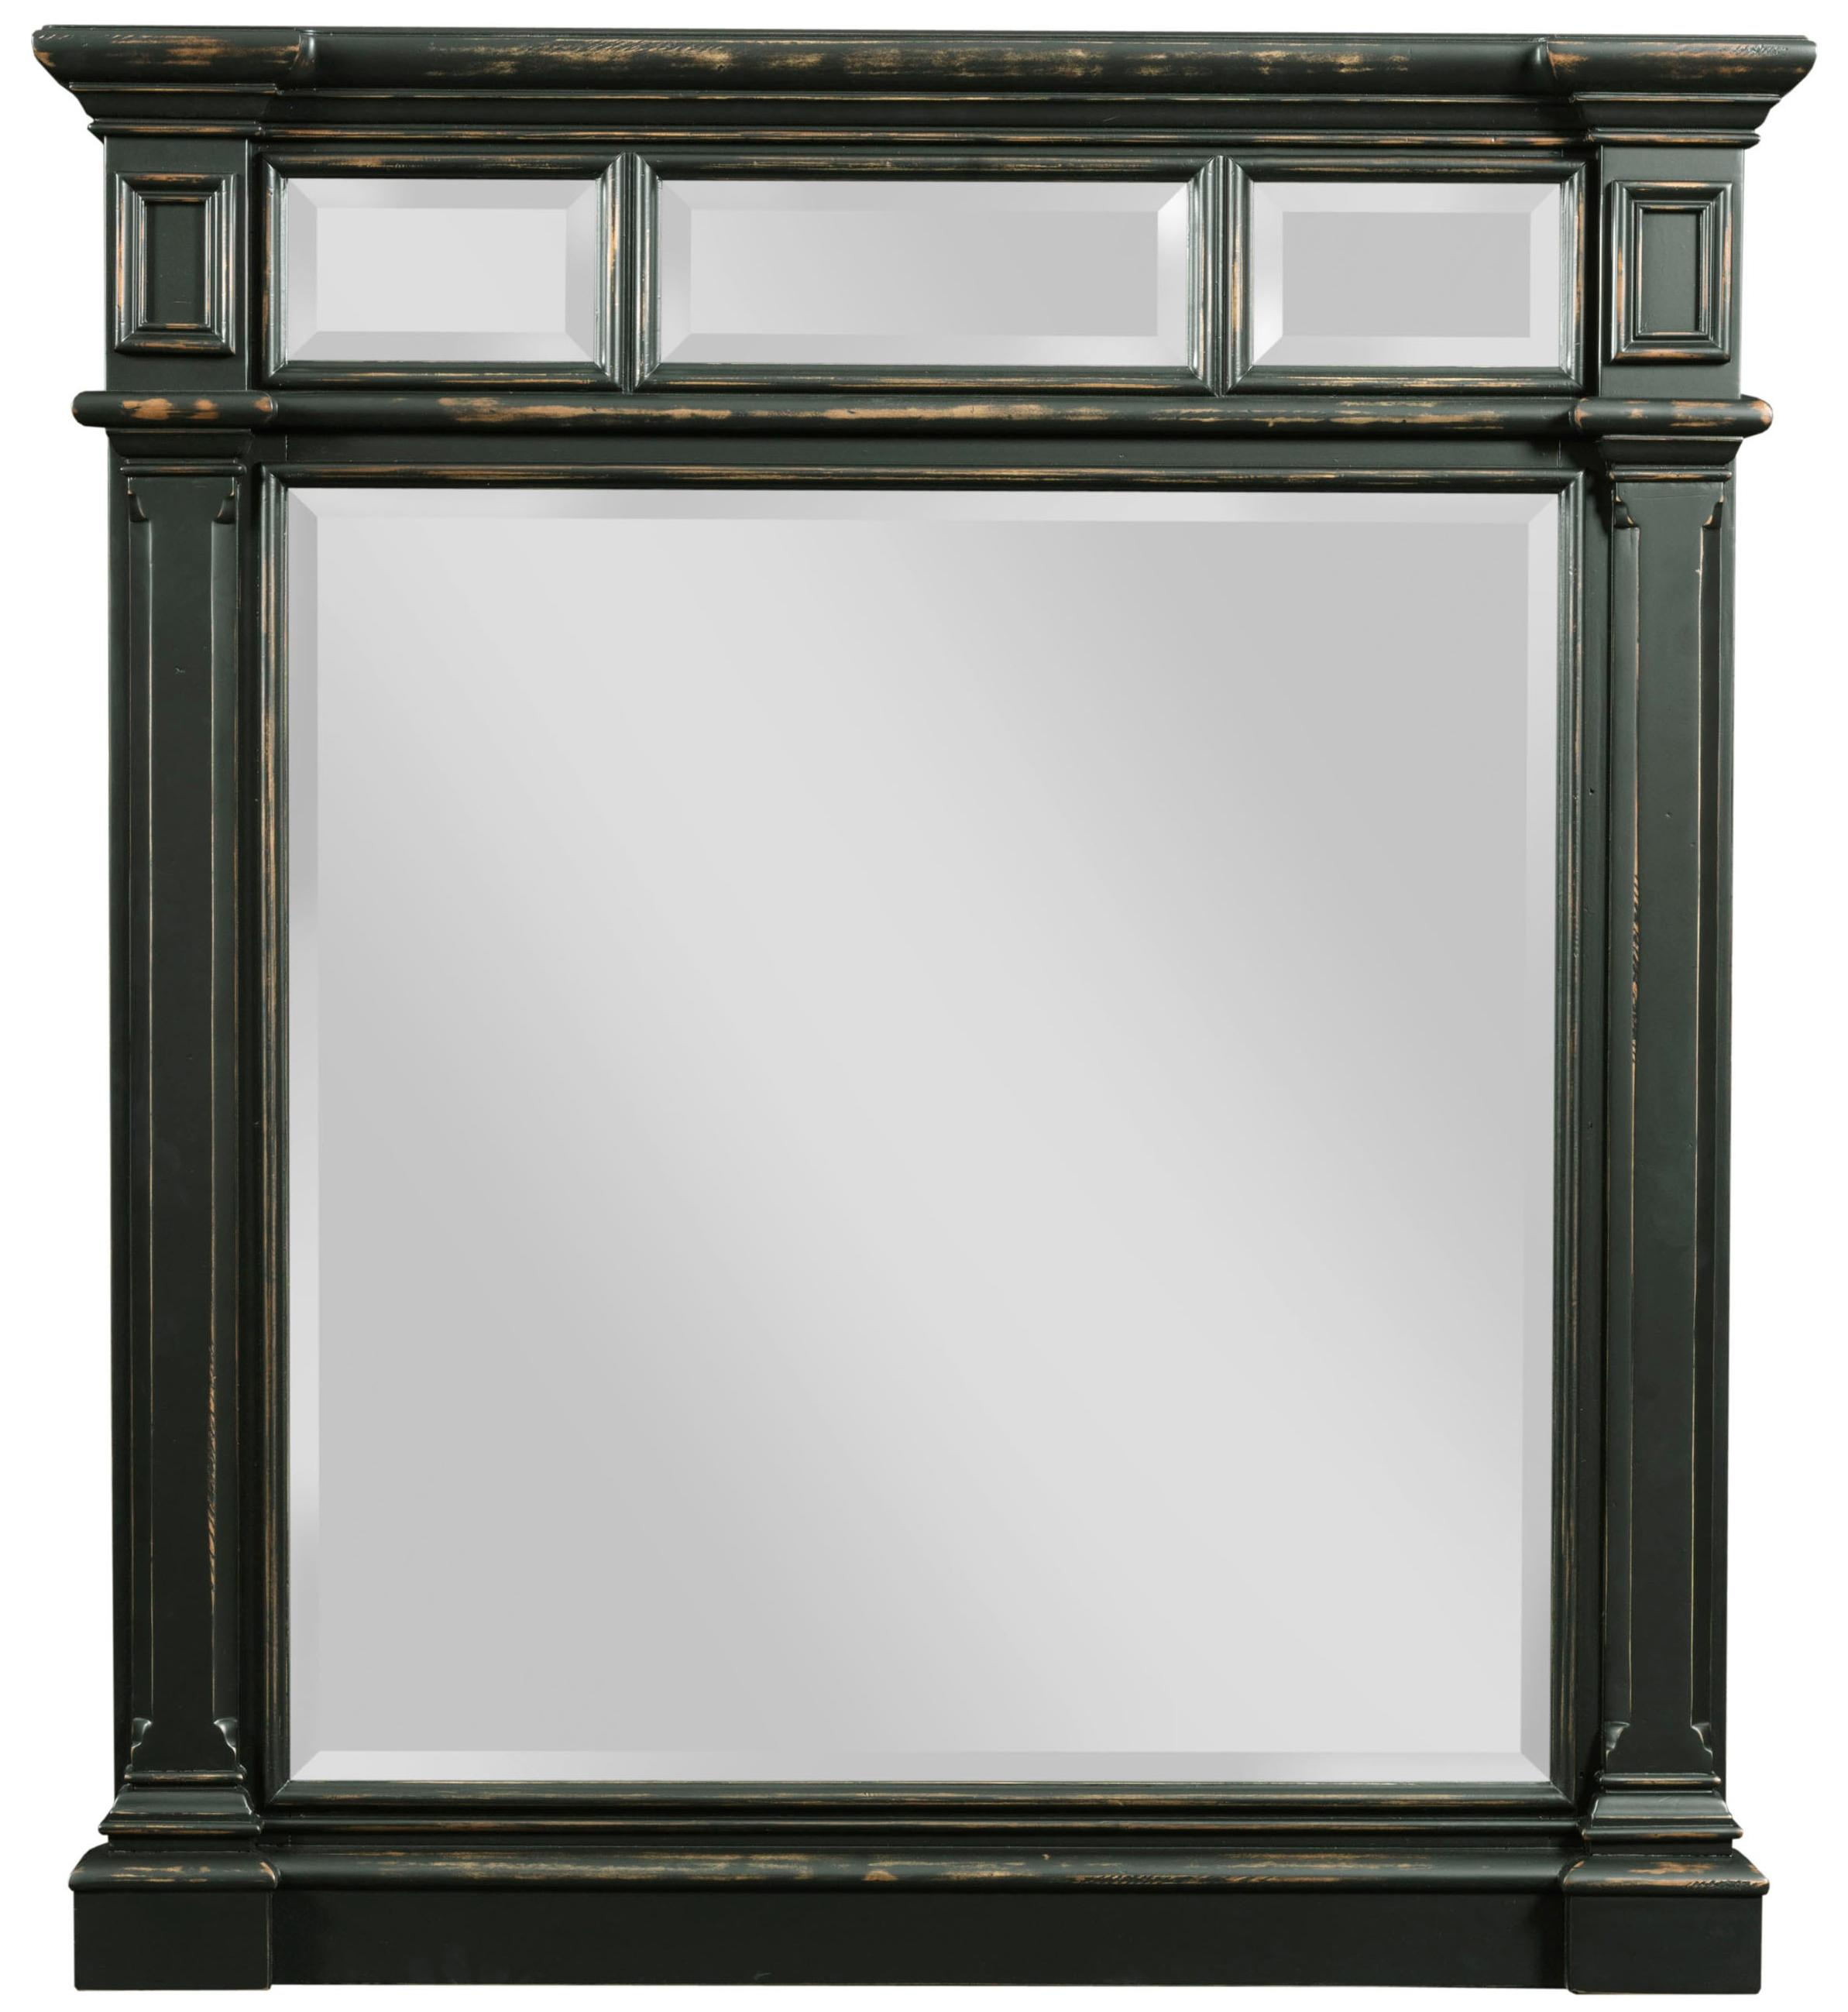 Broyhill Furniture New Vintage Vertical Mirror - Item Number: 4809-237